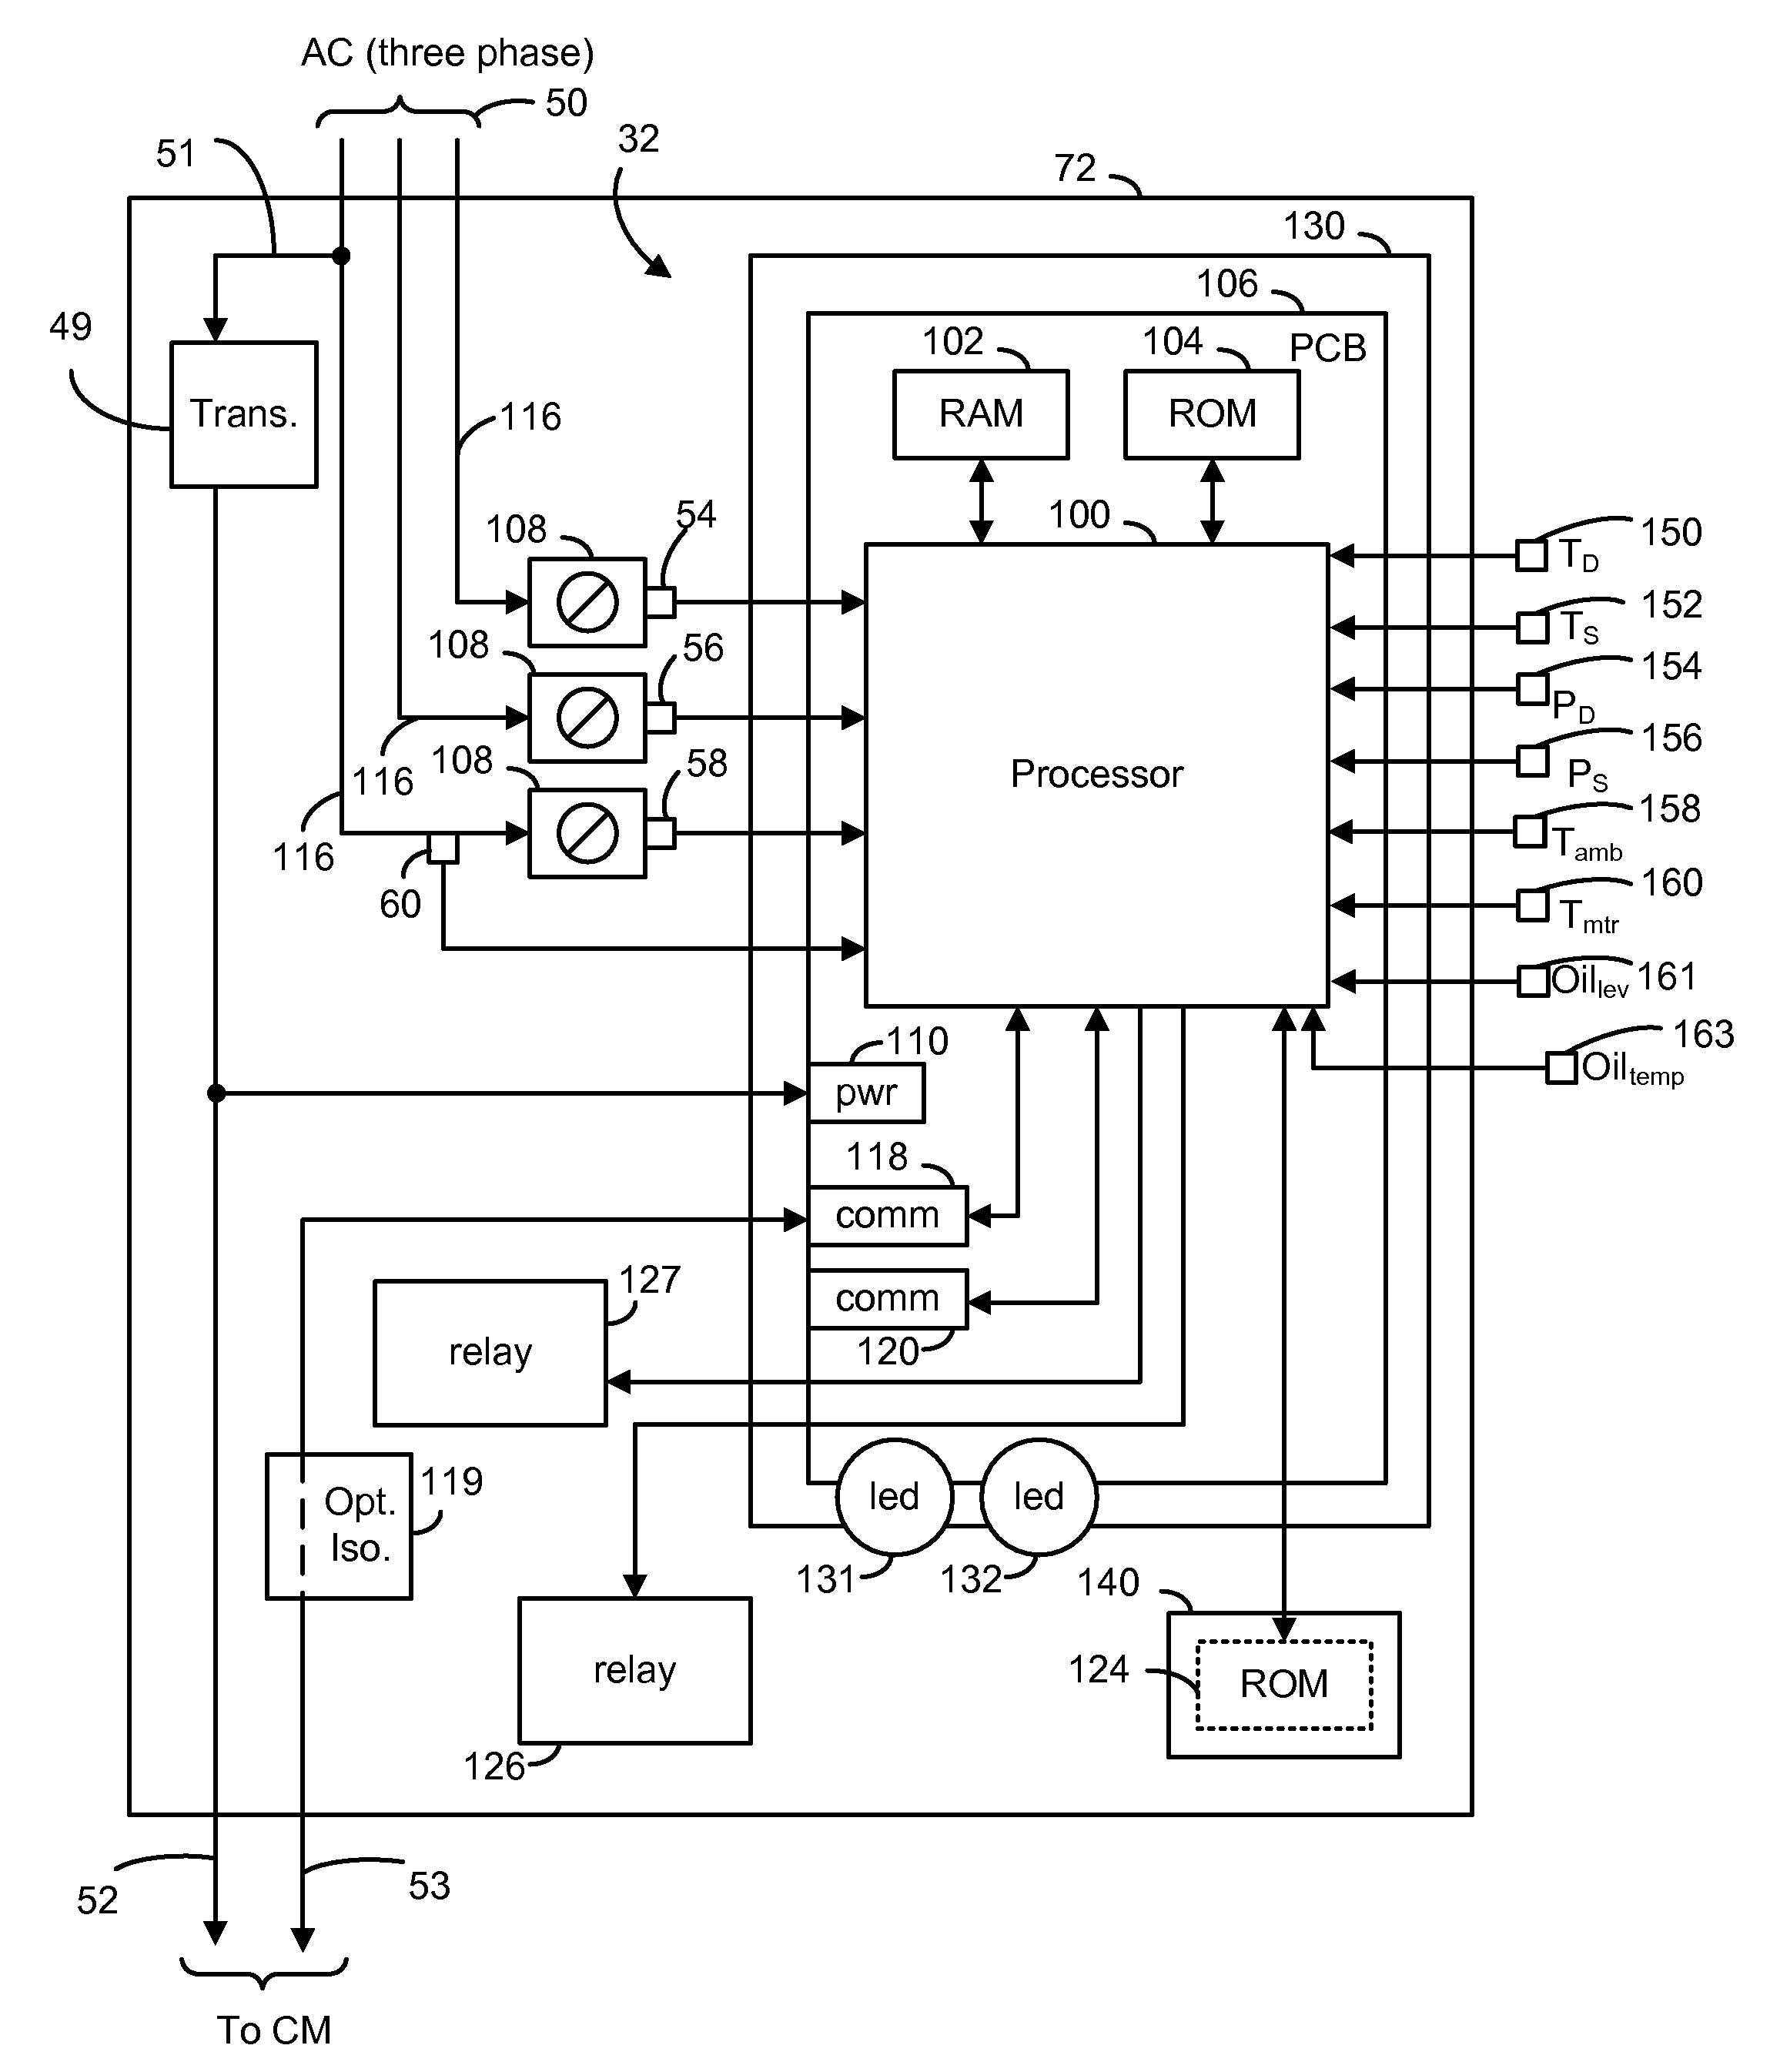 Kubota G1900 Wiring Harness Hst Diagrams F2400 Diagram Ignition Switch Craigslist Mahindra L